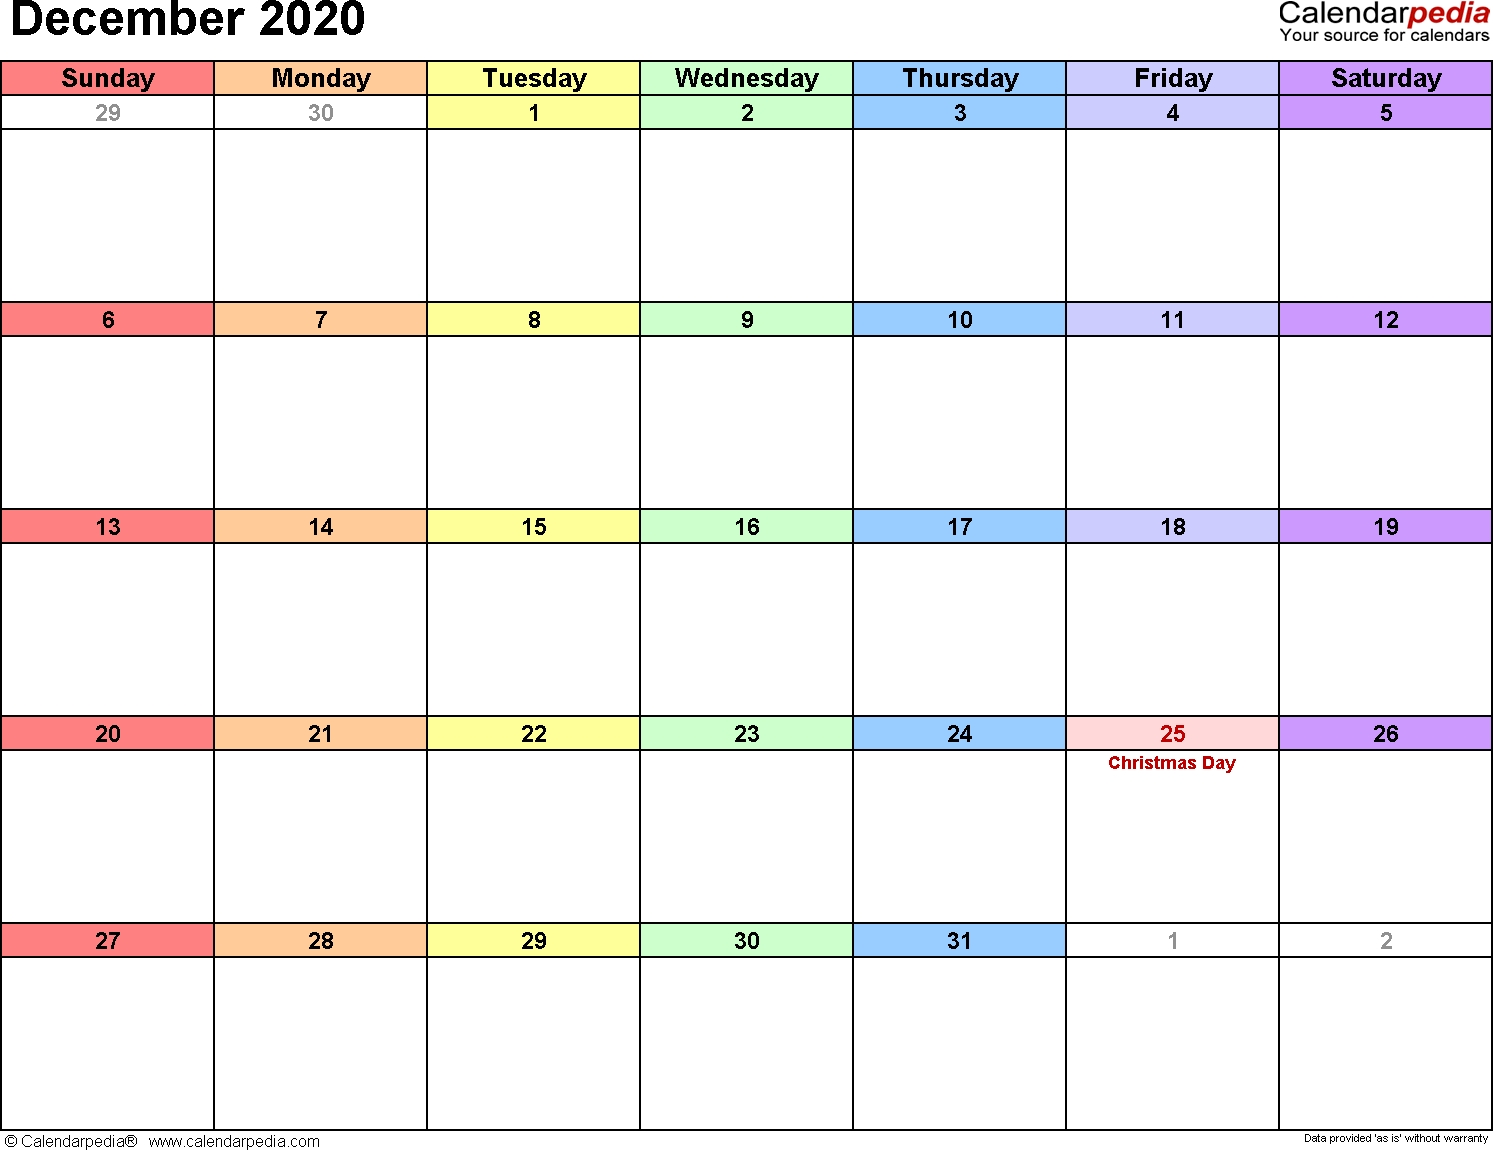 December 2020 Calendars For Word, Excel & Pdf  August-December 2020 Calendar